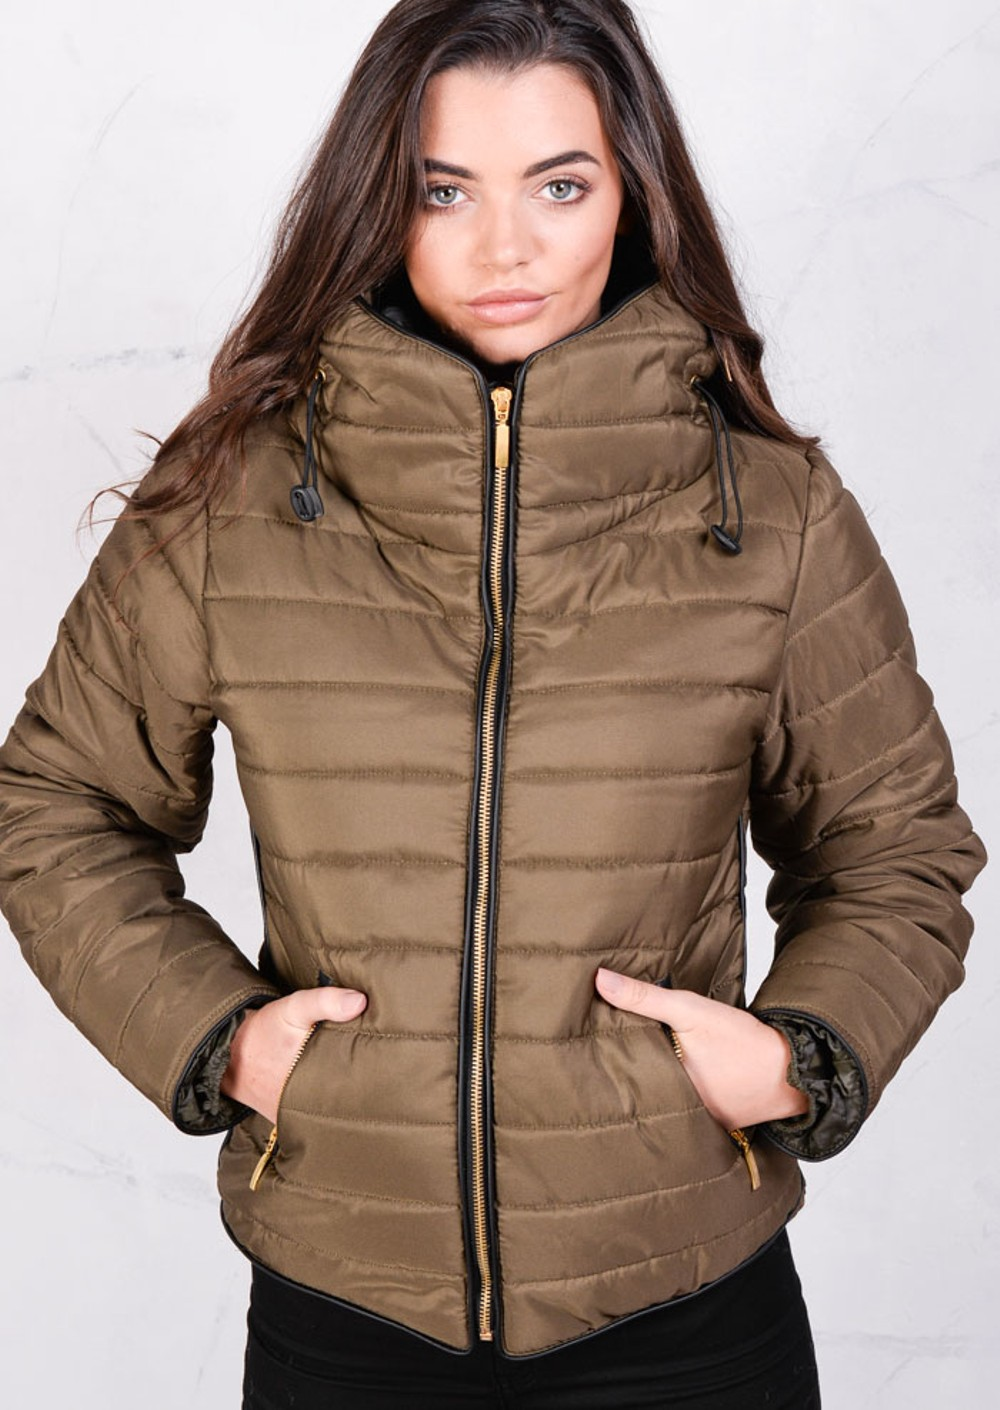 Find great deals on eBay for fashion jacket. Shop with confidence. Skip to main content. eBay: Shop by category. Shop by category. Ralph Lauren Denim Jacket Indian Fashion Coats, Jackets & Vests for Women. Kimono Jacket Chinese Fashion Regular Size Coats, Jackets & Vests for Women.